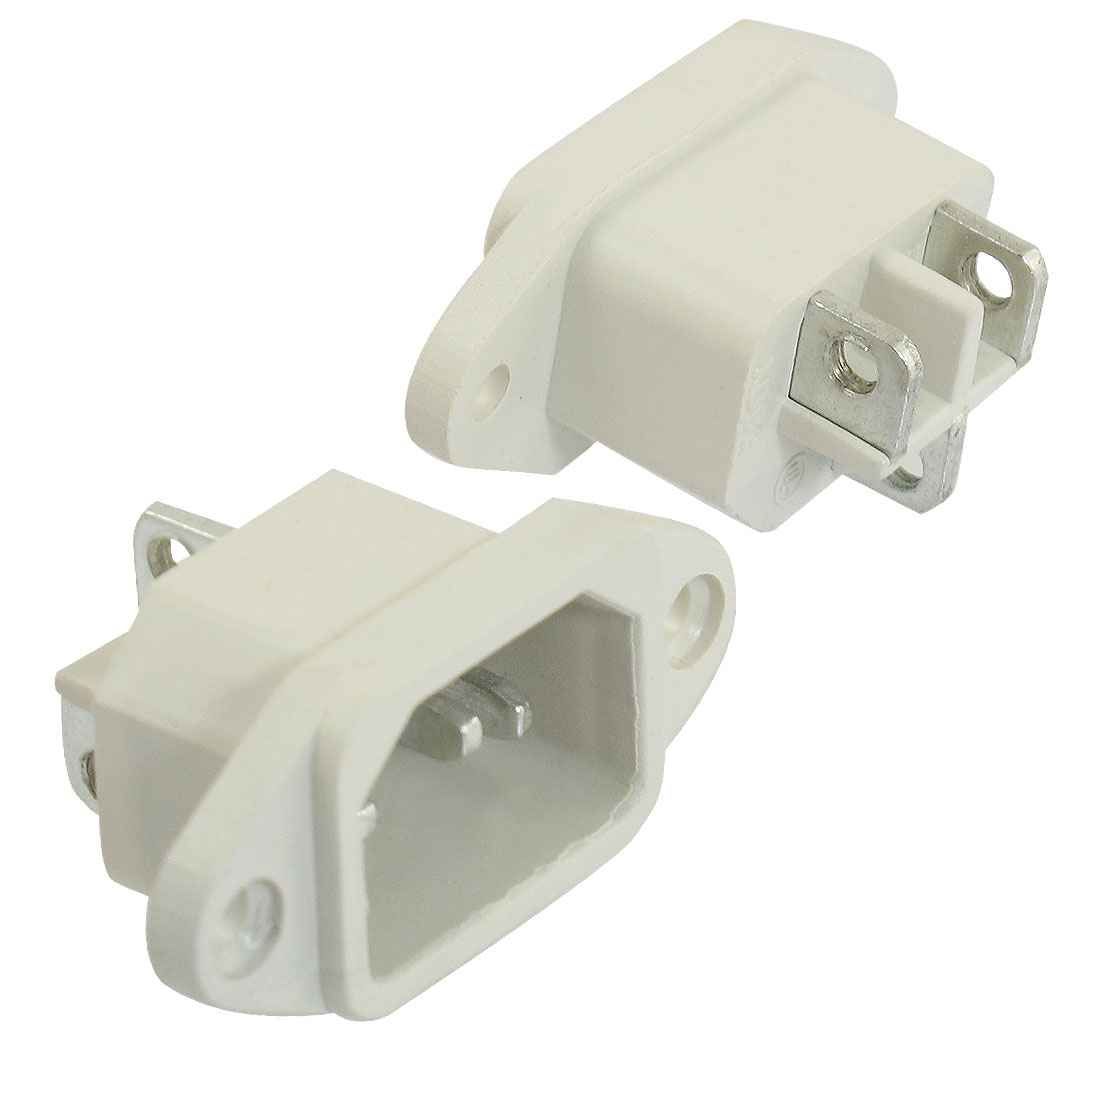 2 Pcs AC 250V 10A 3 Terminals C14 Plug Outlet Power Socket Adapter Offwhite